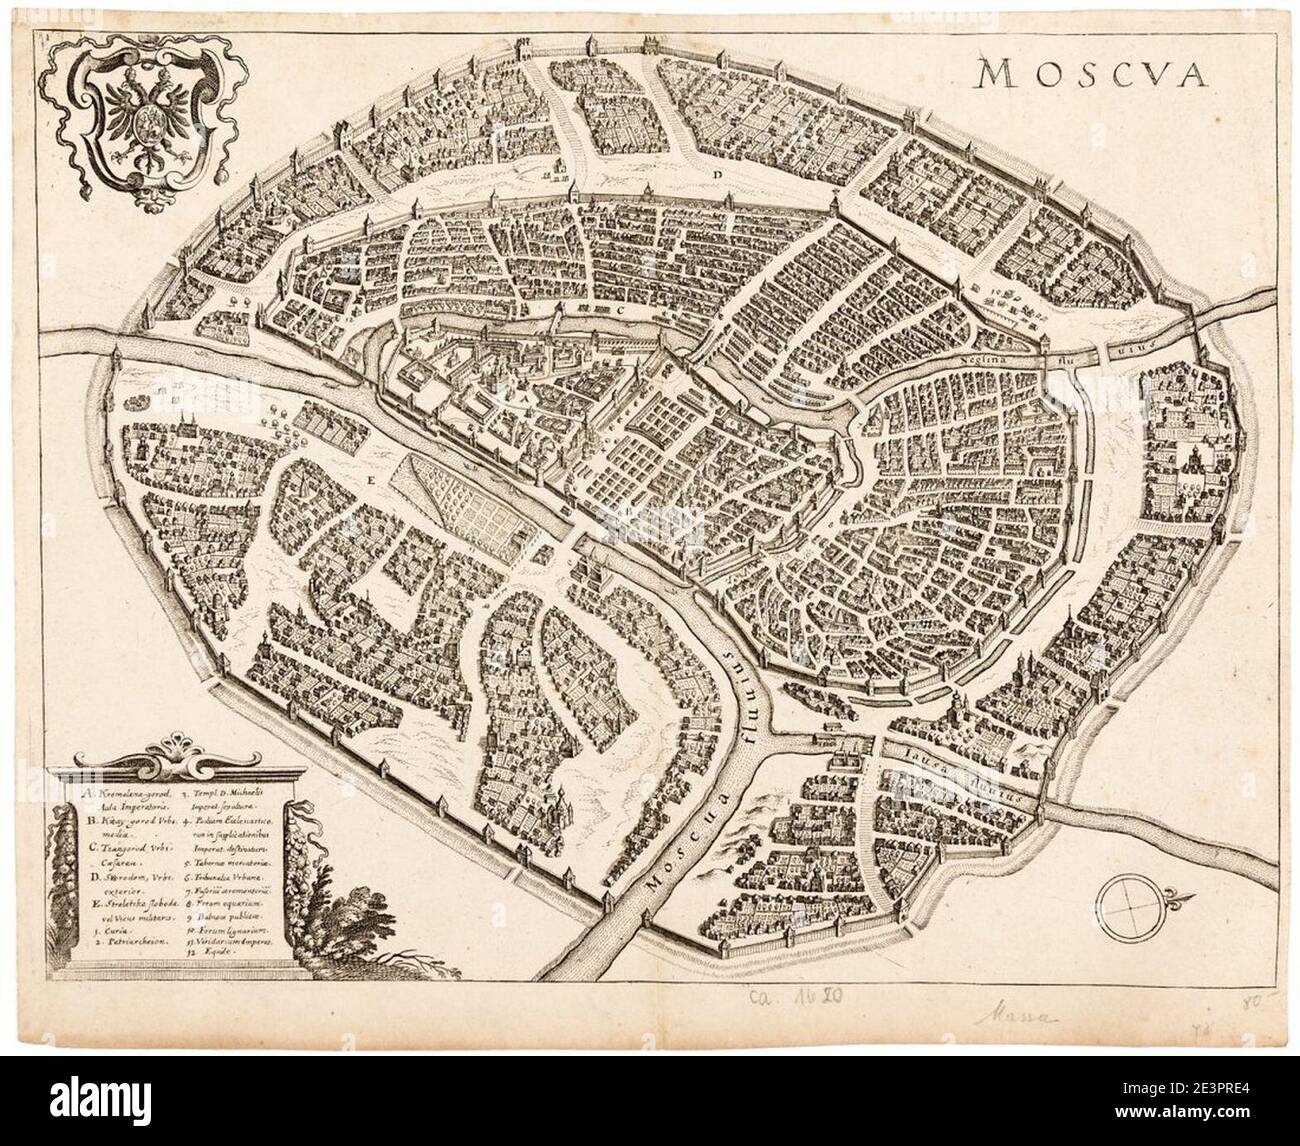 Map of Moscow by Matthäus Merian. Stock Photo